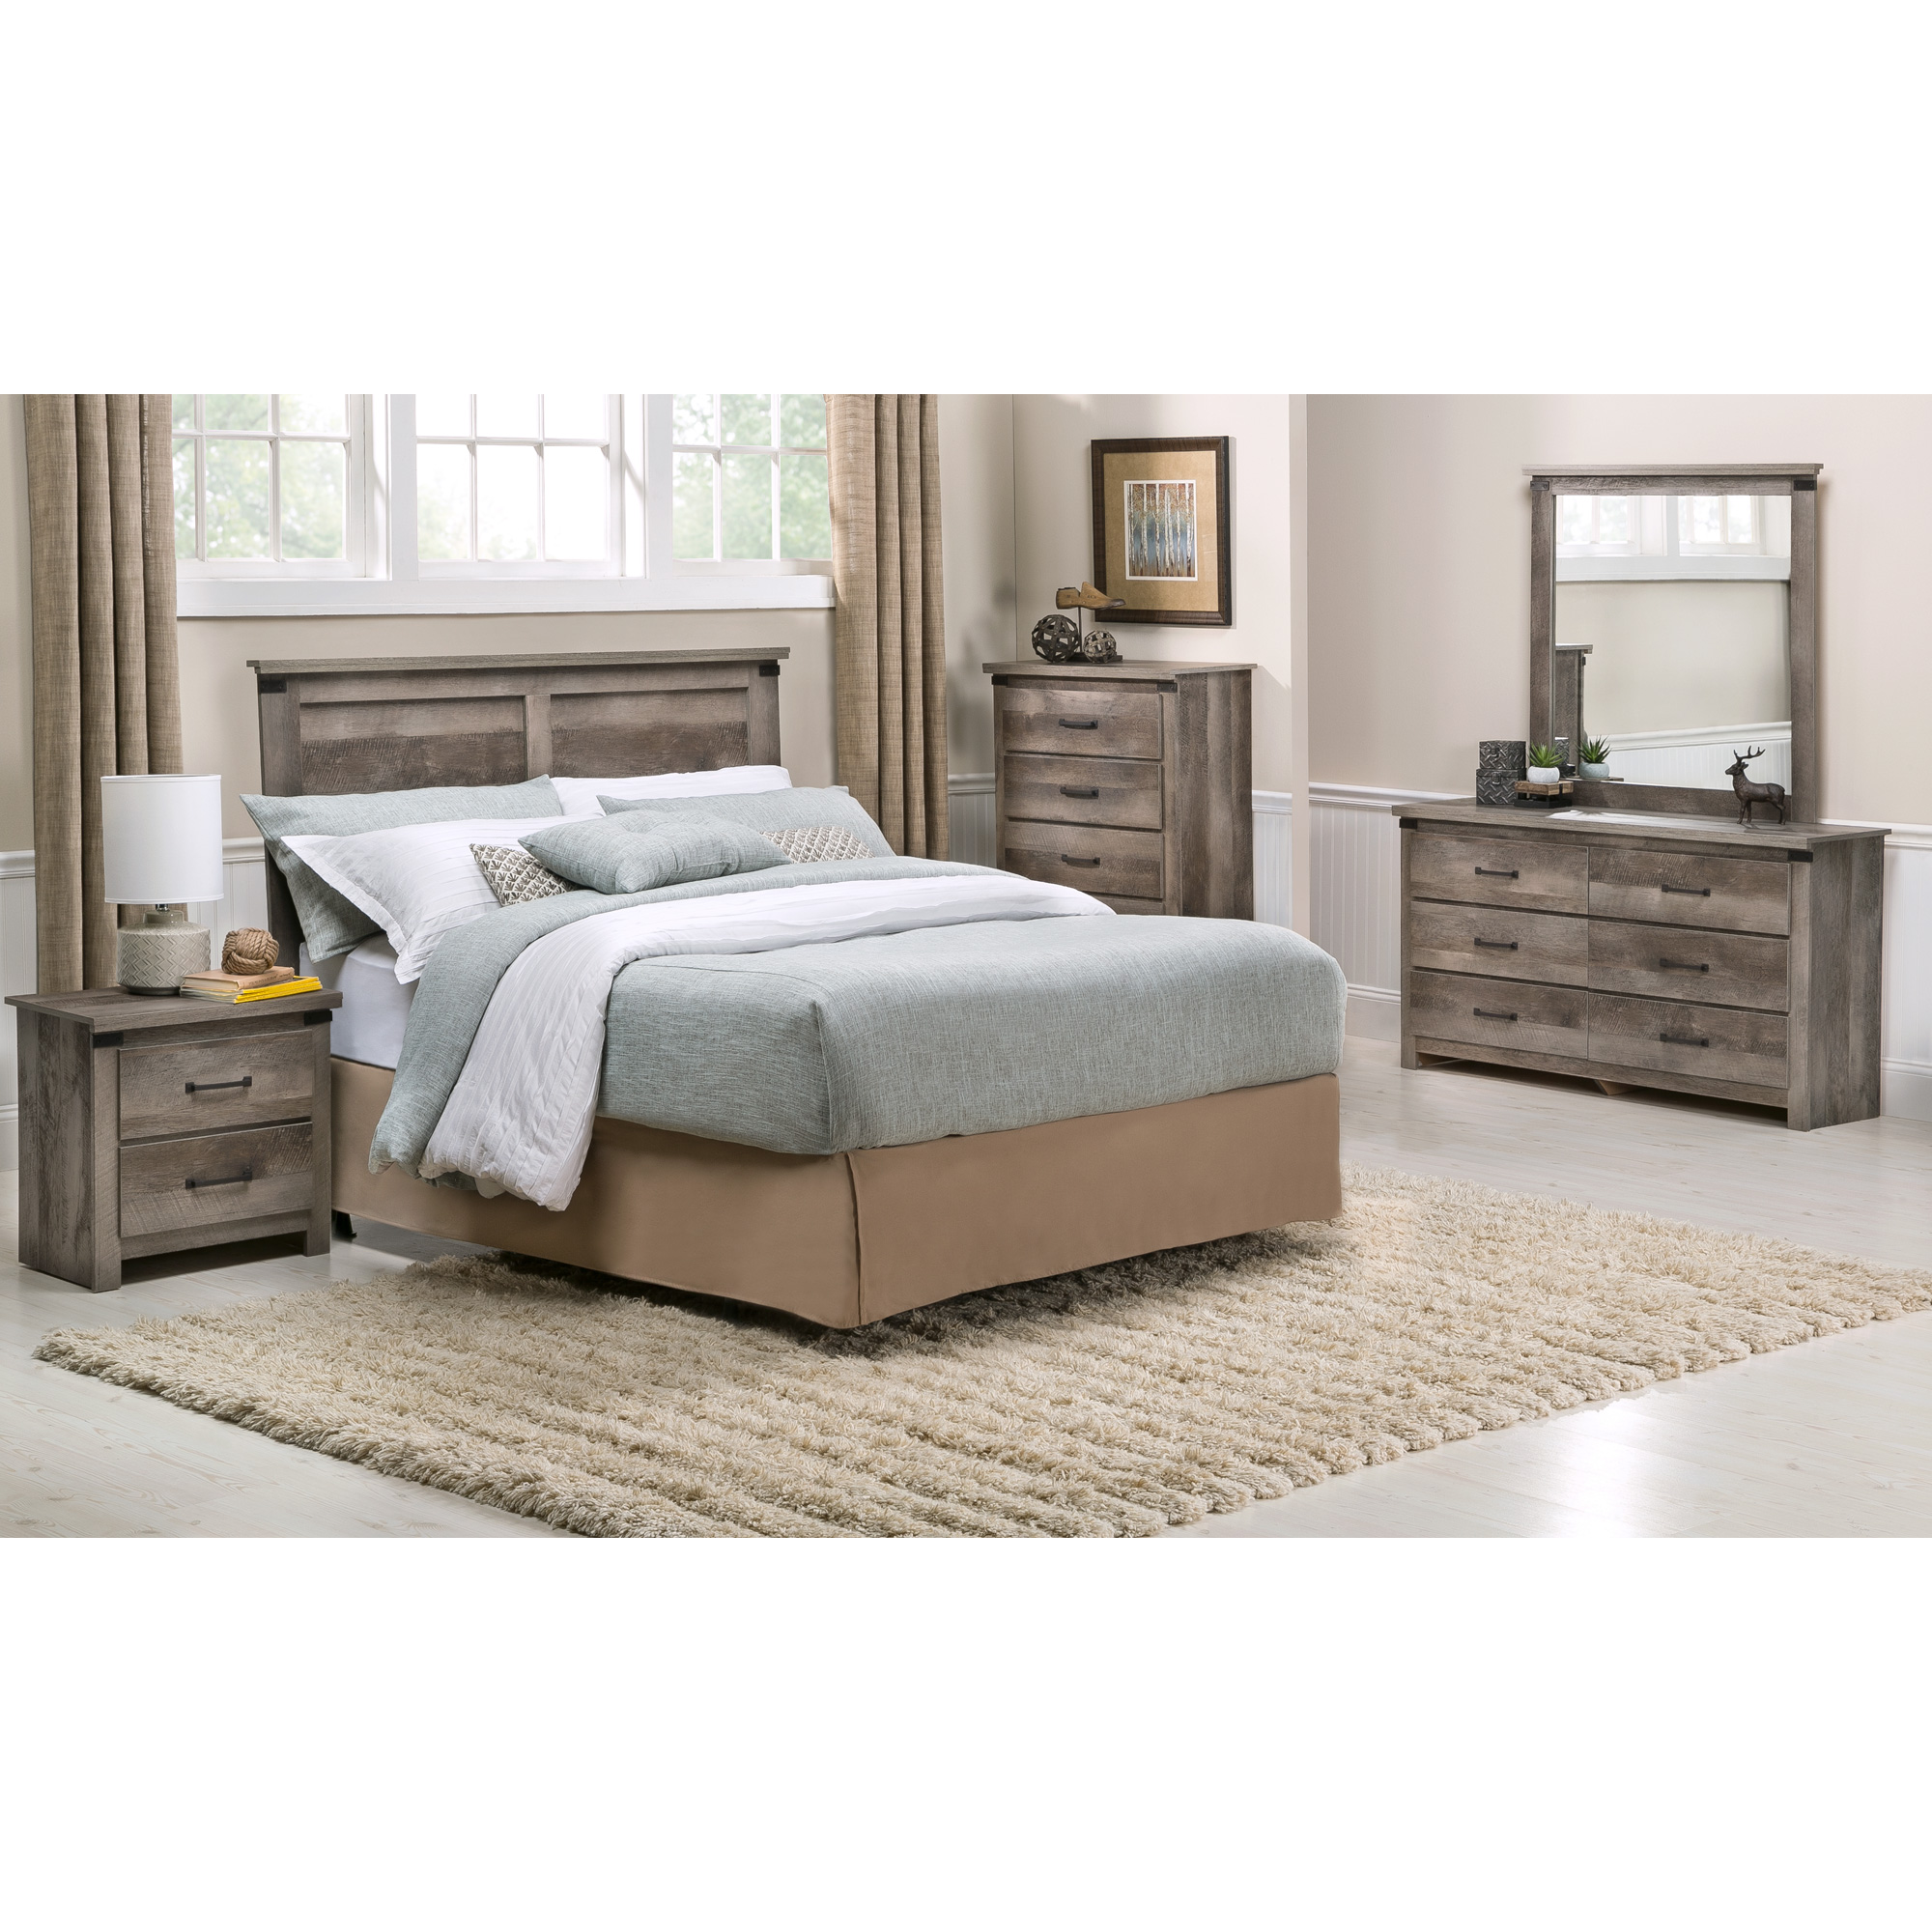 Kith Furniture | Gambrel Driftwood 4 Piece King Panel Room Package Bedroom Set